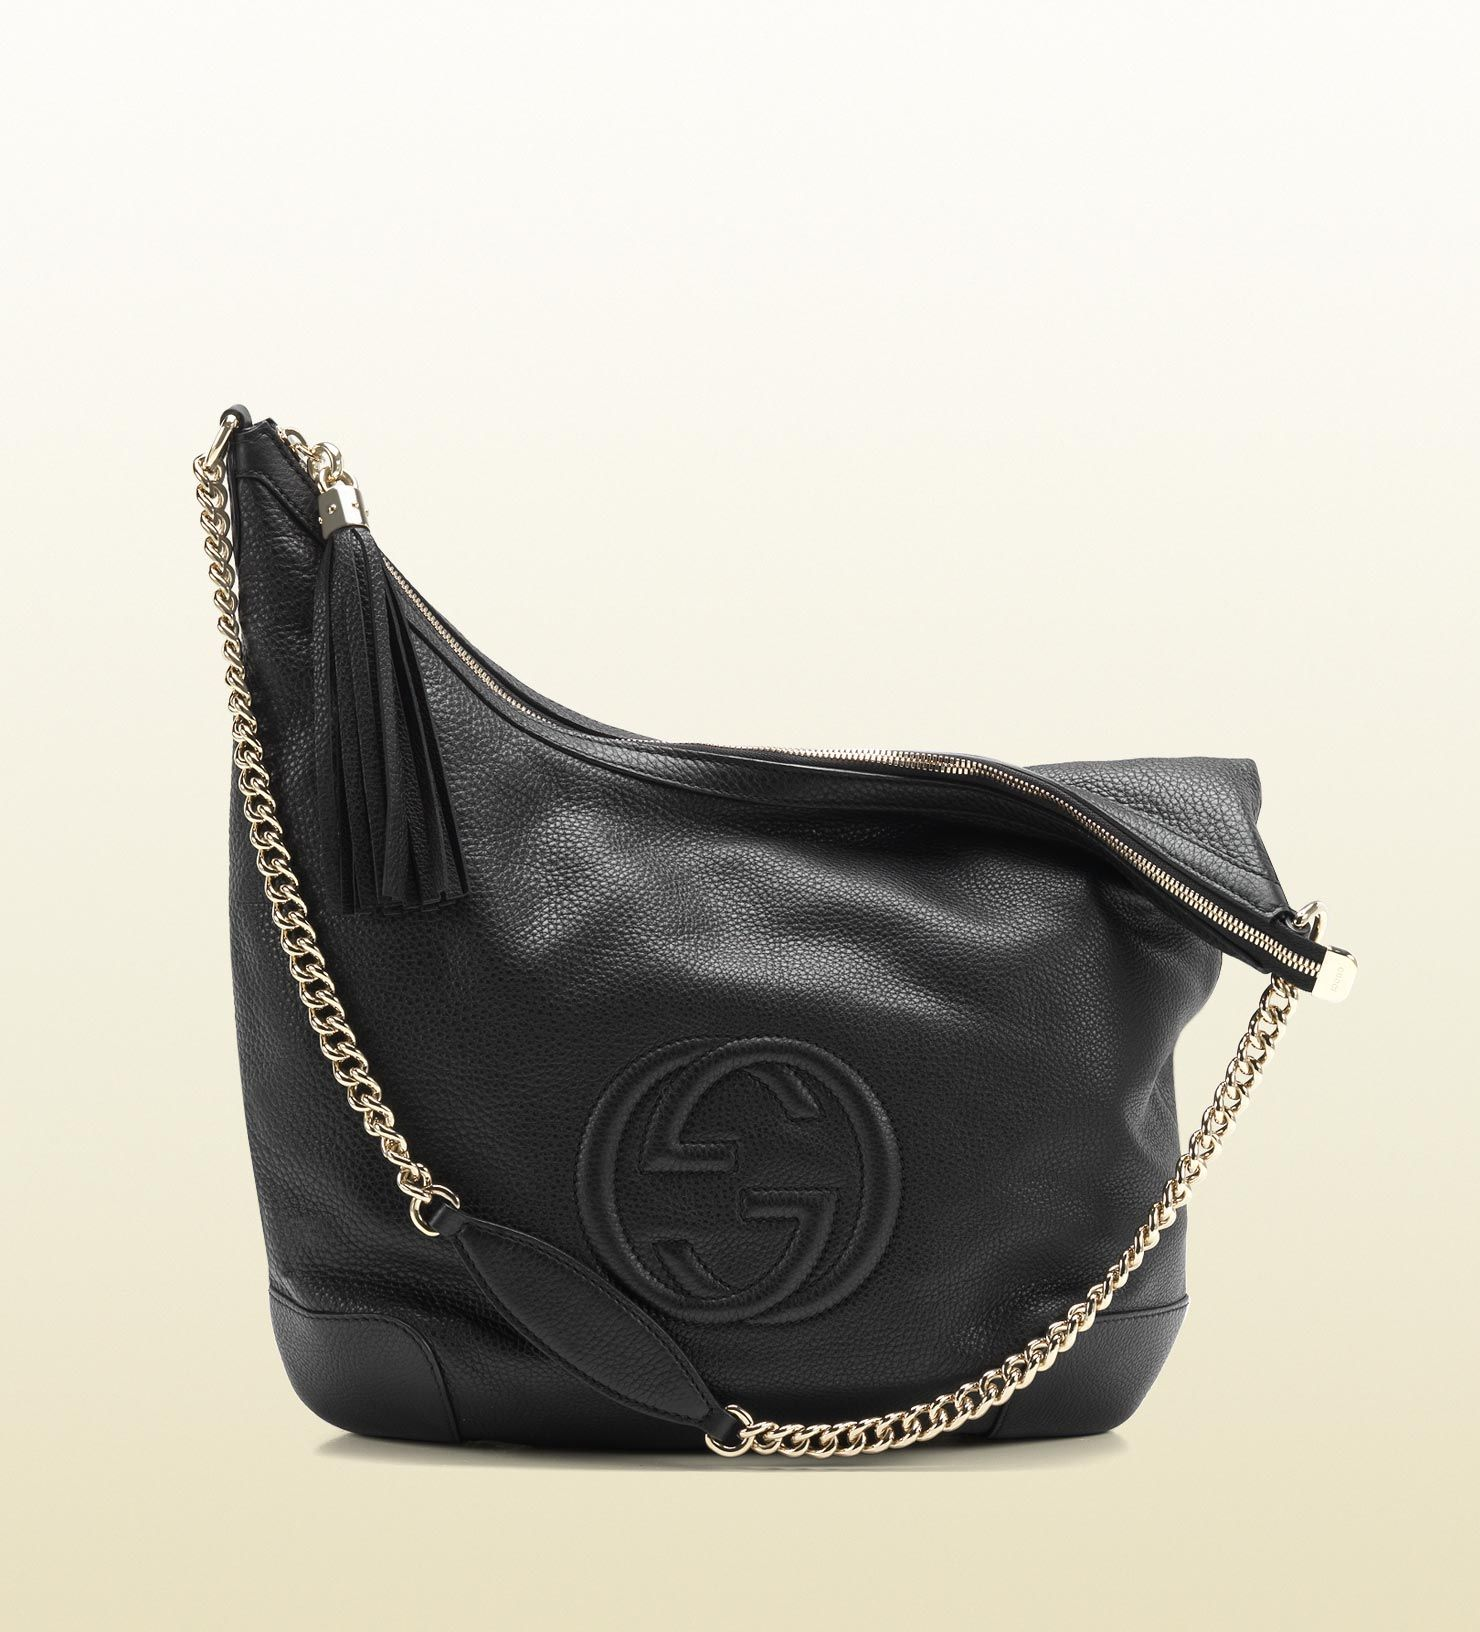 c160dcfb2ee6 Gucci soho leather shoulder bag with chain strap | Bag Obsession ...